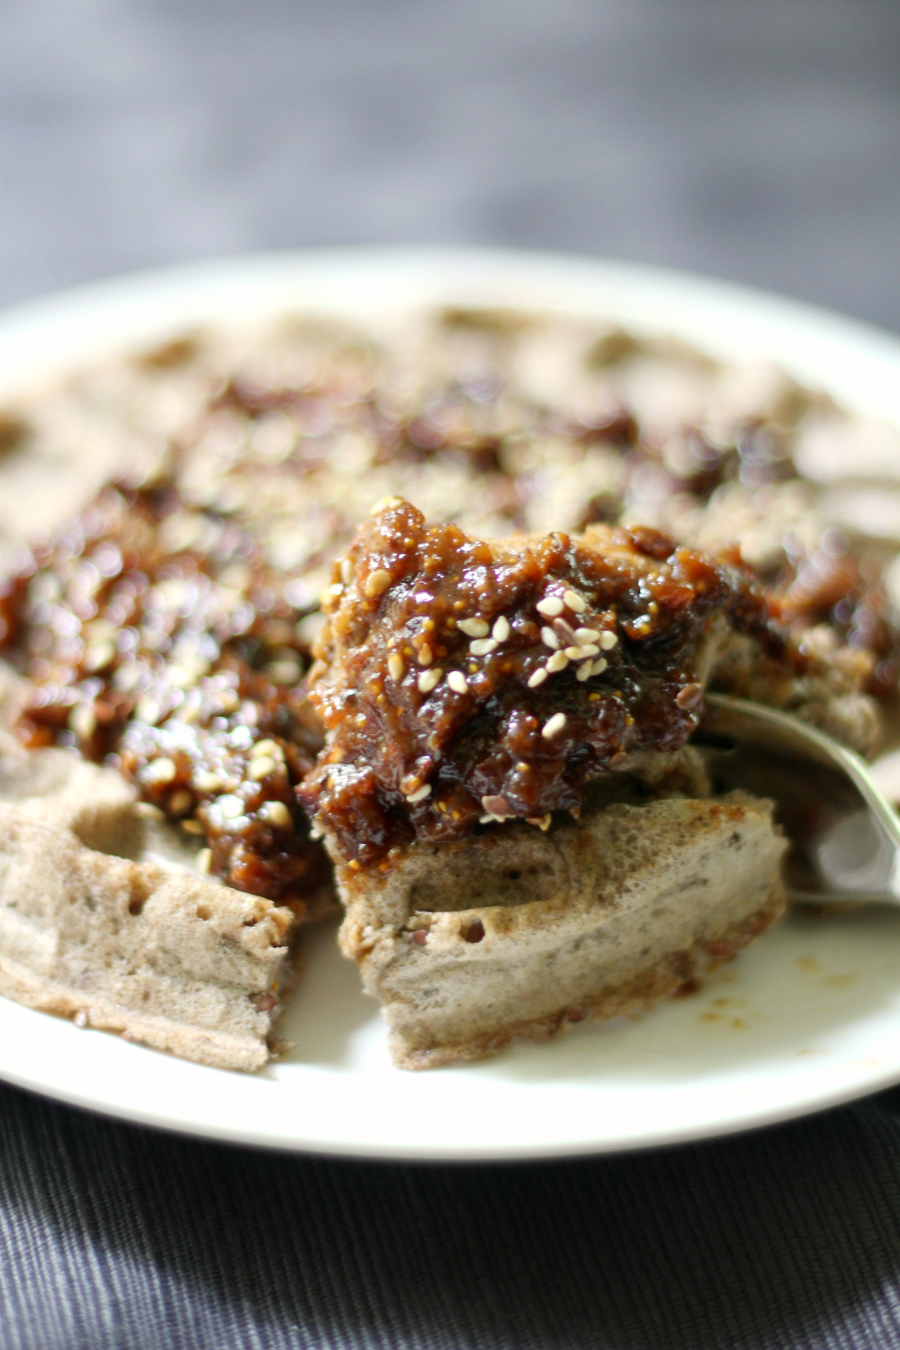 Buckwheat Waffles with Fig, Maple, Tahini Compote | Strength and Sunshine @RebeccaGF666 Simple gluten-free, nut-free, vegan buckwheat waffles with a full-flavored fig, maple, tahini compote to take this breakfast over the top! These waffles will be your new favorite weekend breakfast or brunch recipe!